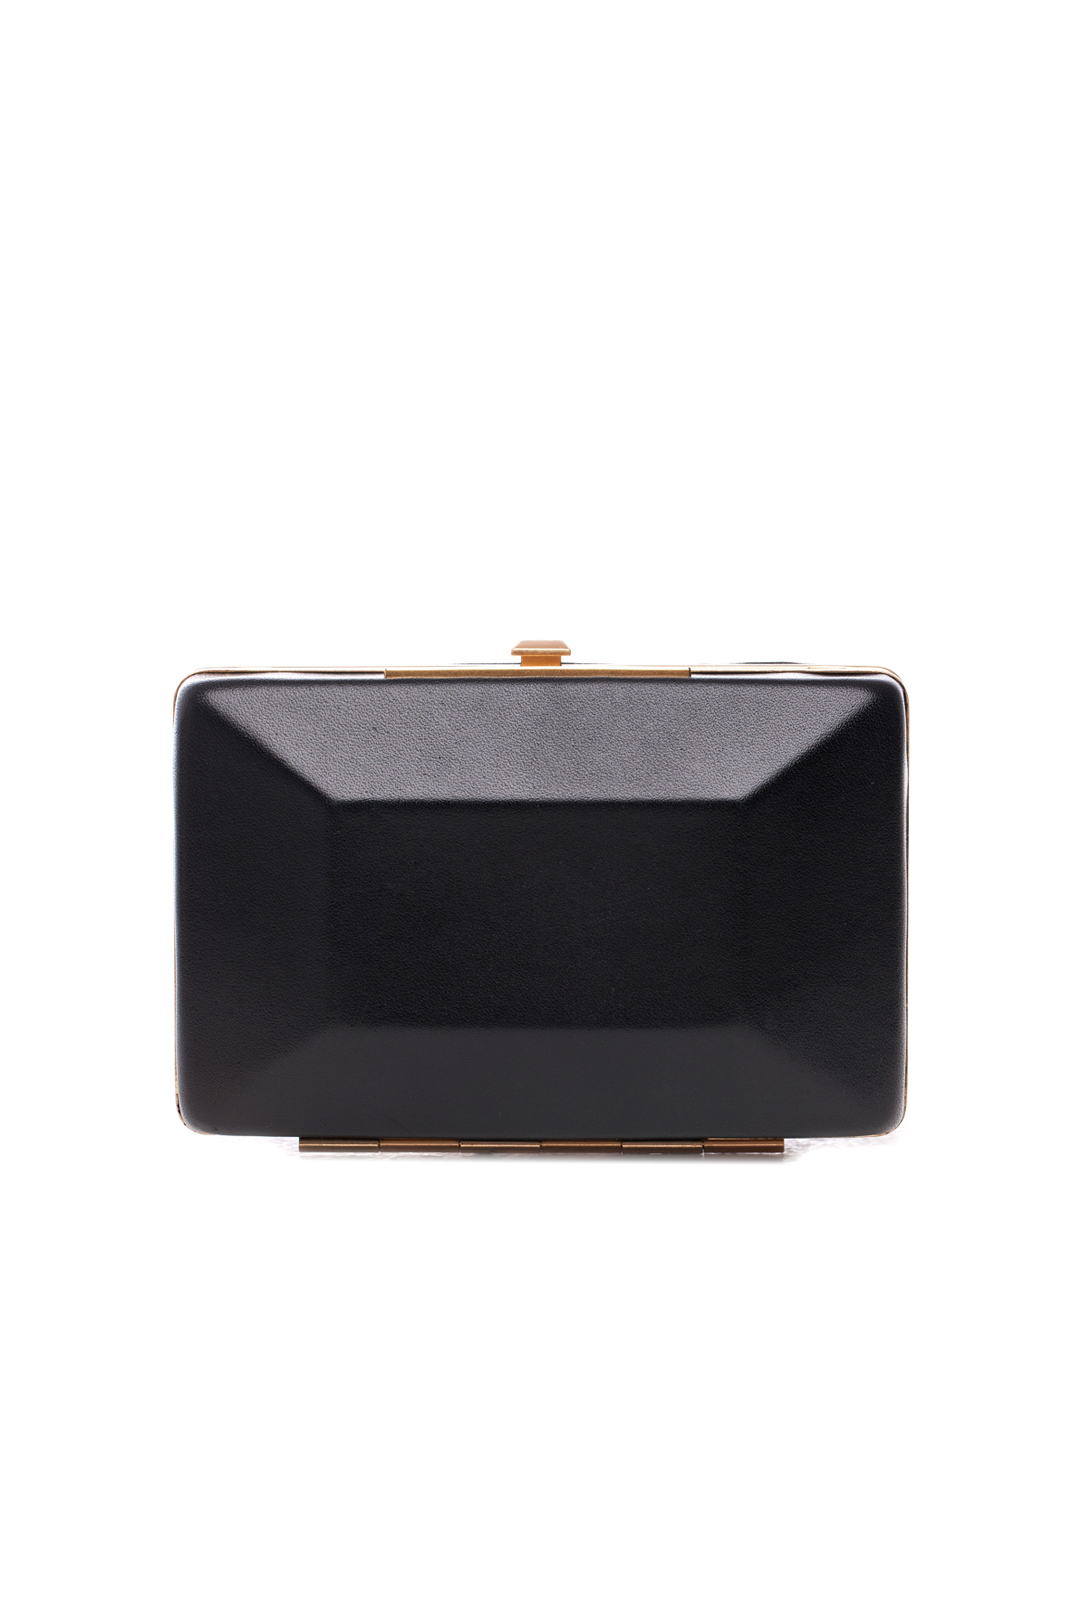 Box It Up Leather Clutch